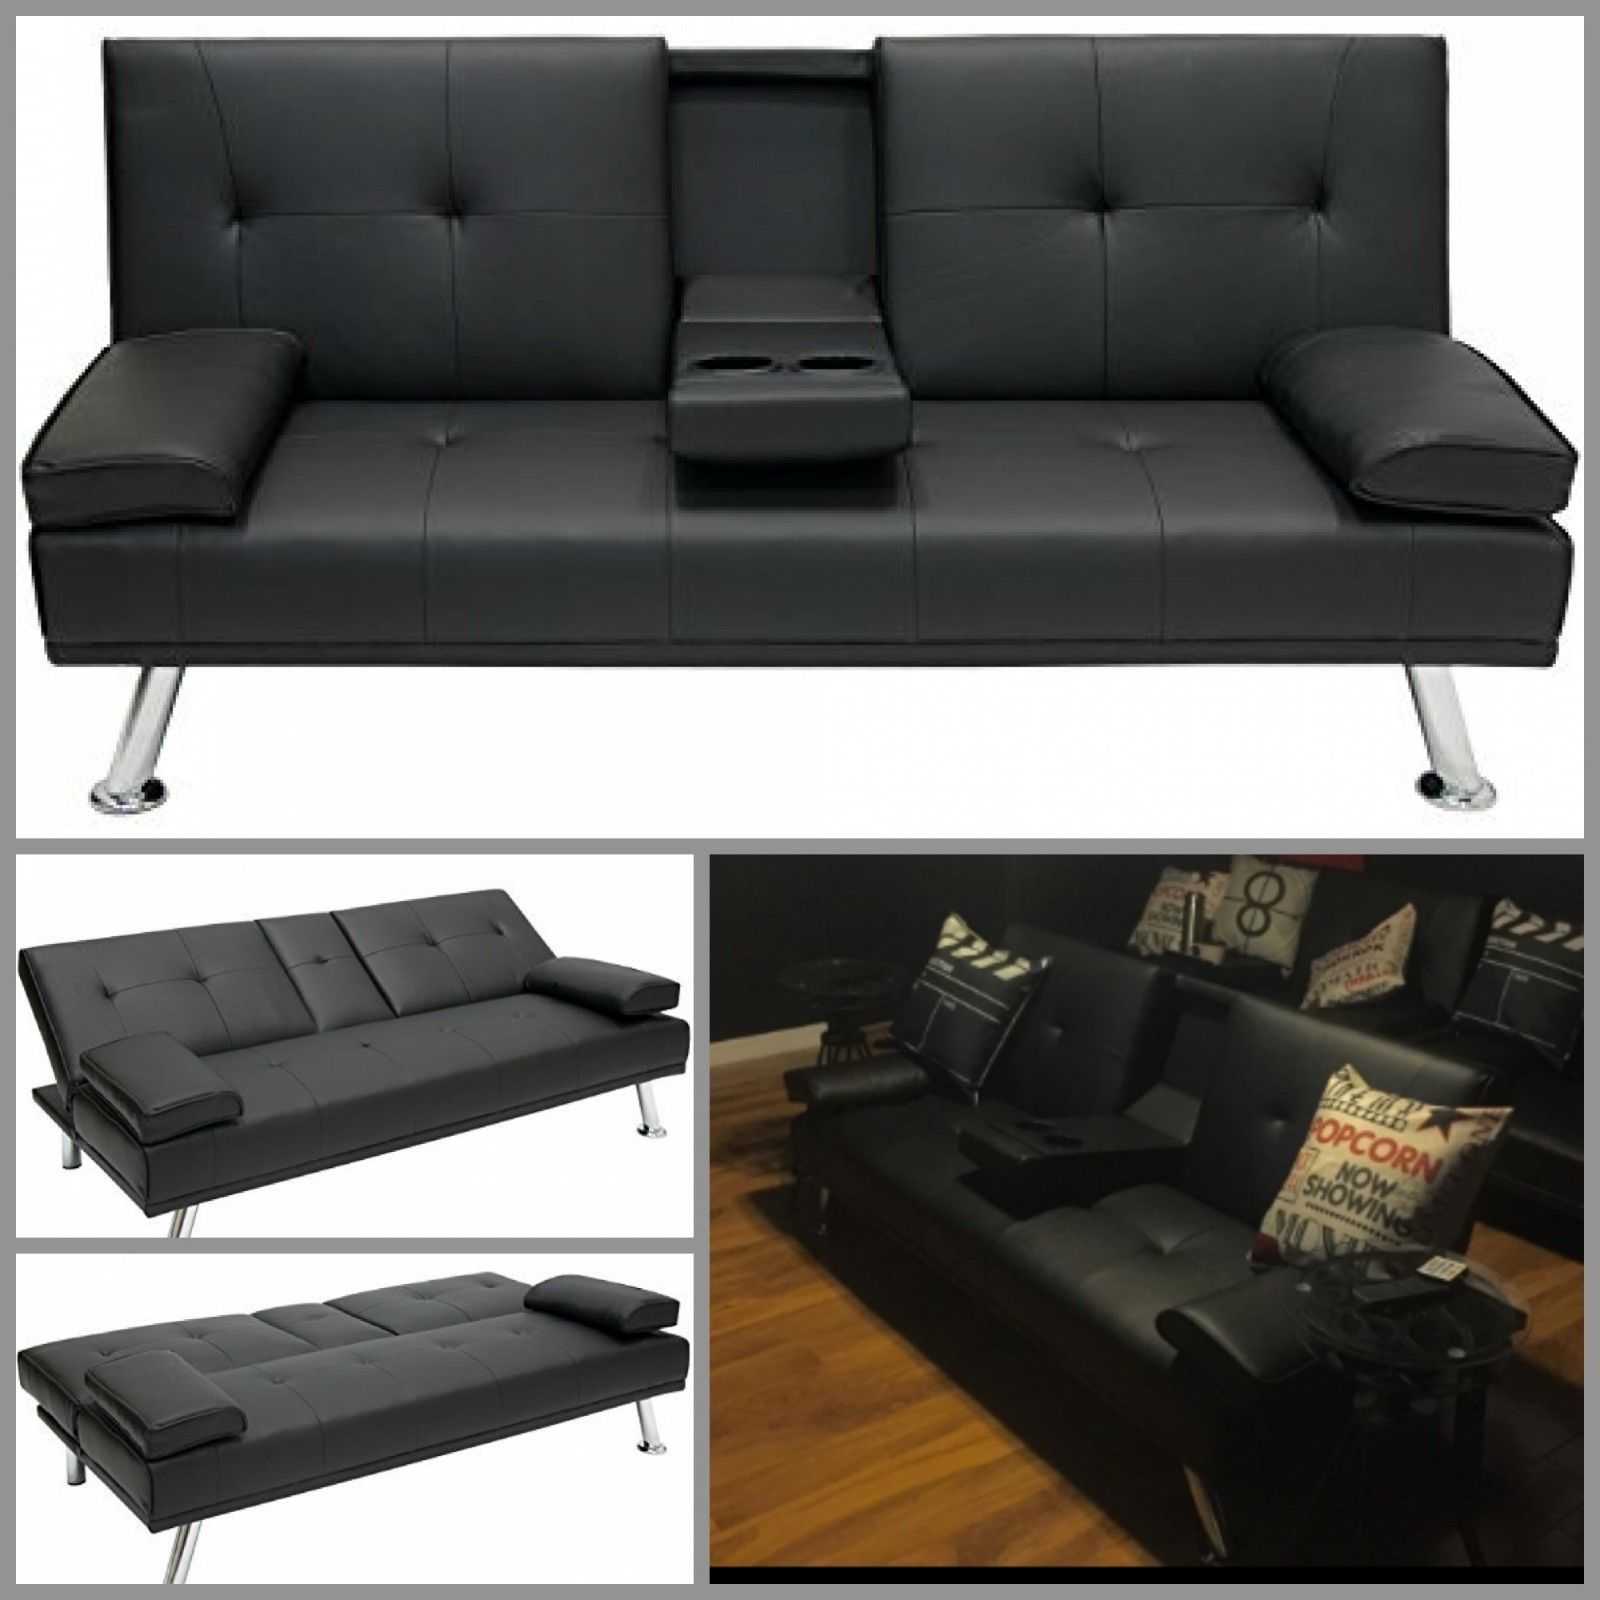 Futon Sofa Bed Sleeper Recliner Sofa Couch Fold Up Modern Furniture Black Leather Sleeper Sofa Futon Sofa Bed Reclining Sofa